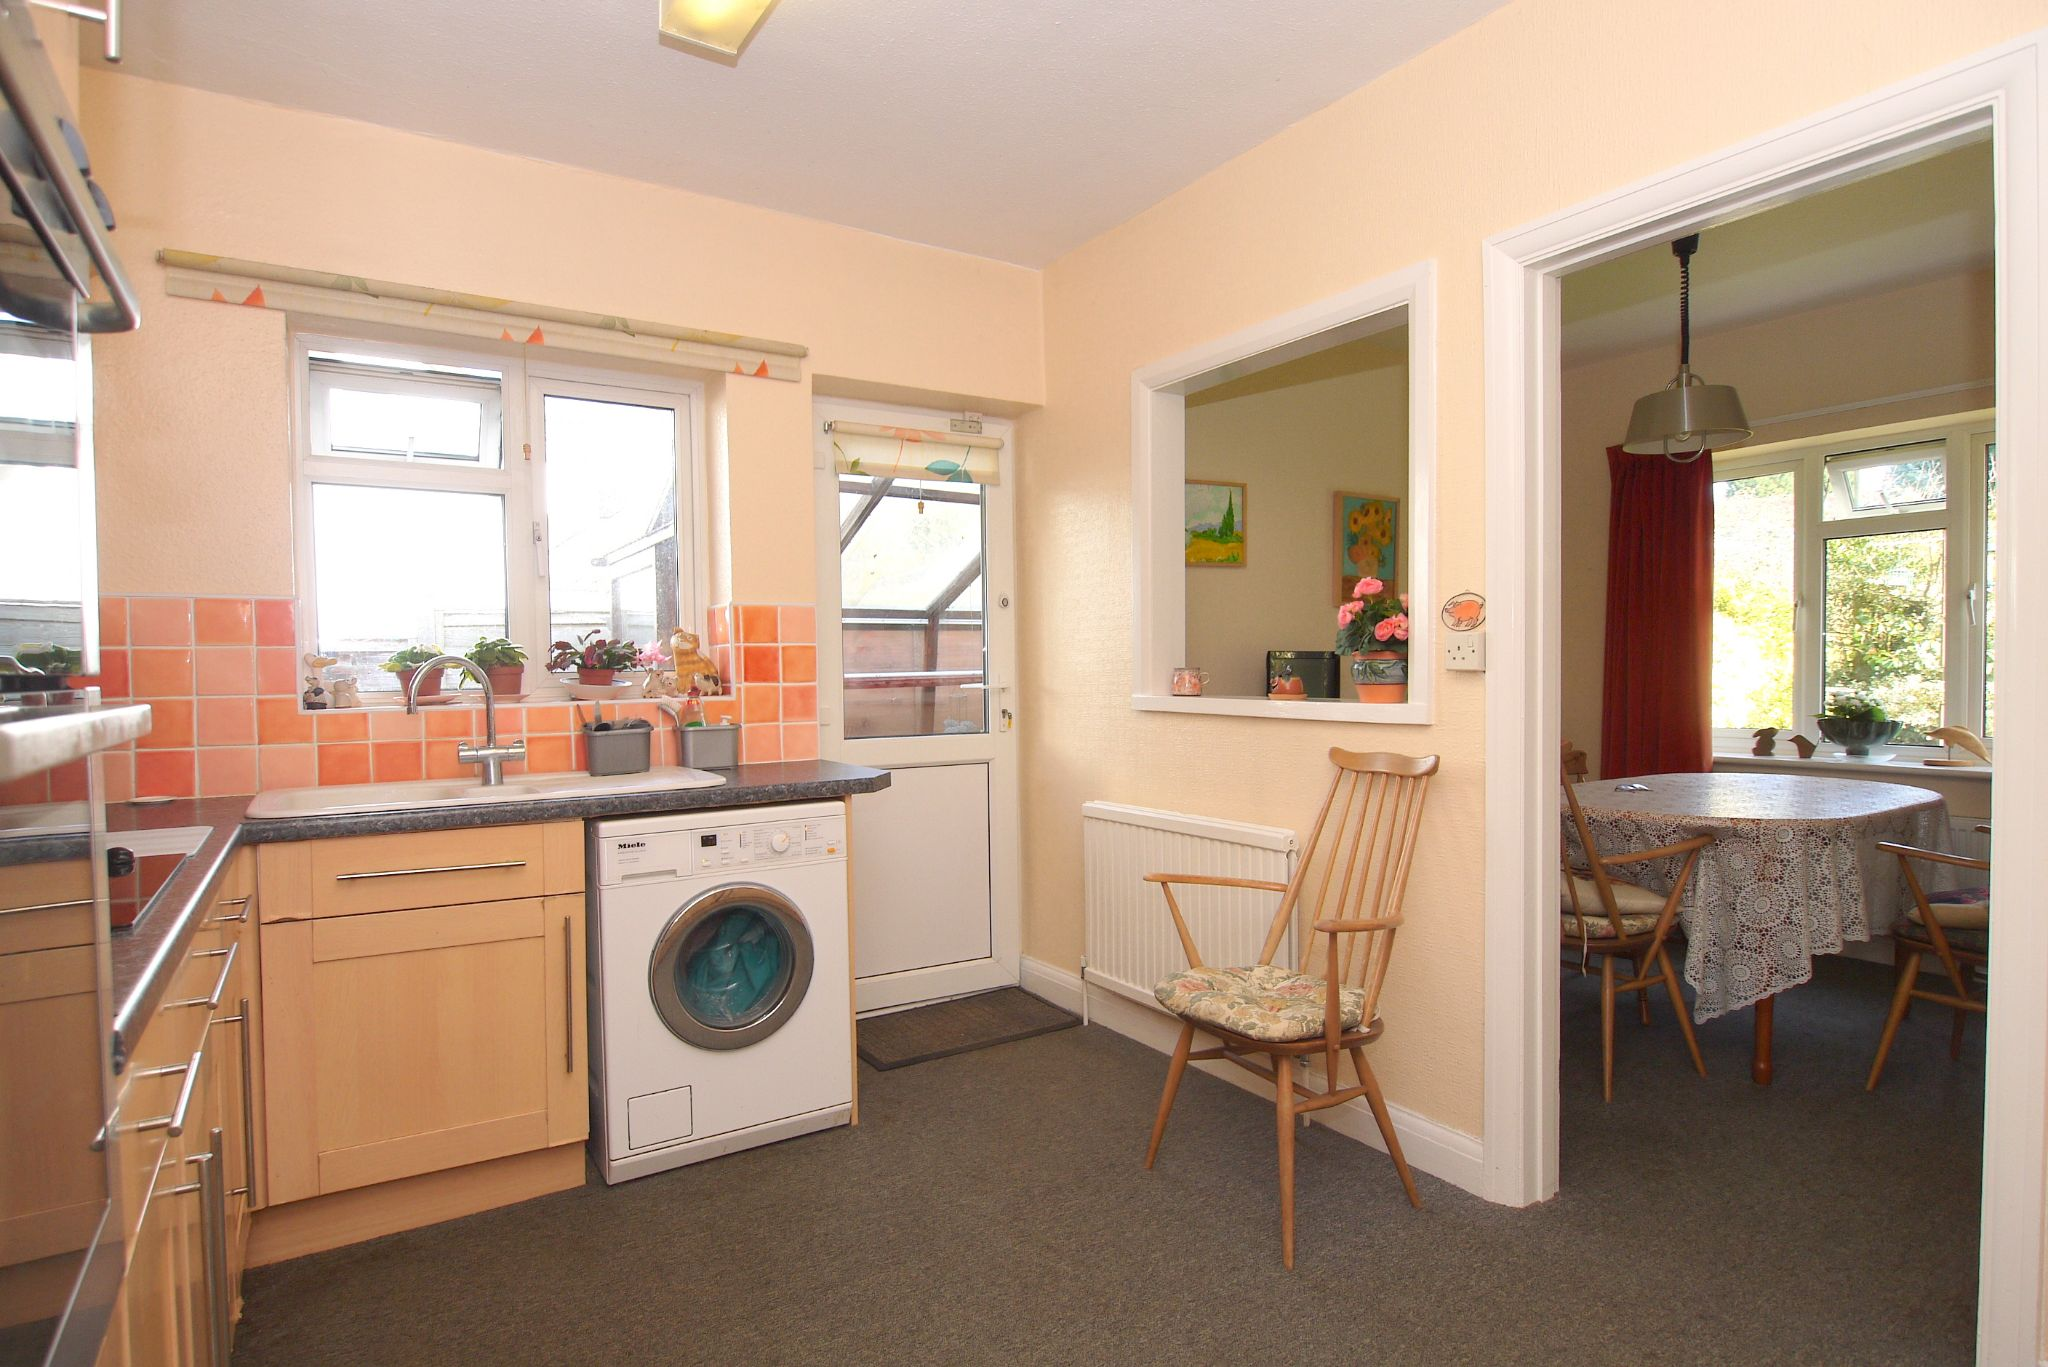 3 bedroom detached bungalow Sale Agreed in Sevenoaks - Photograph 5